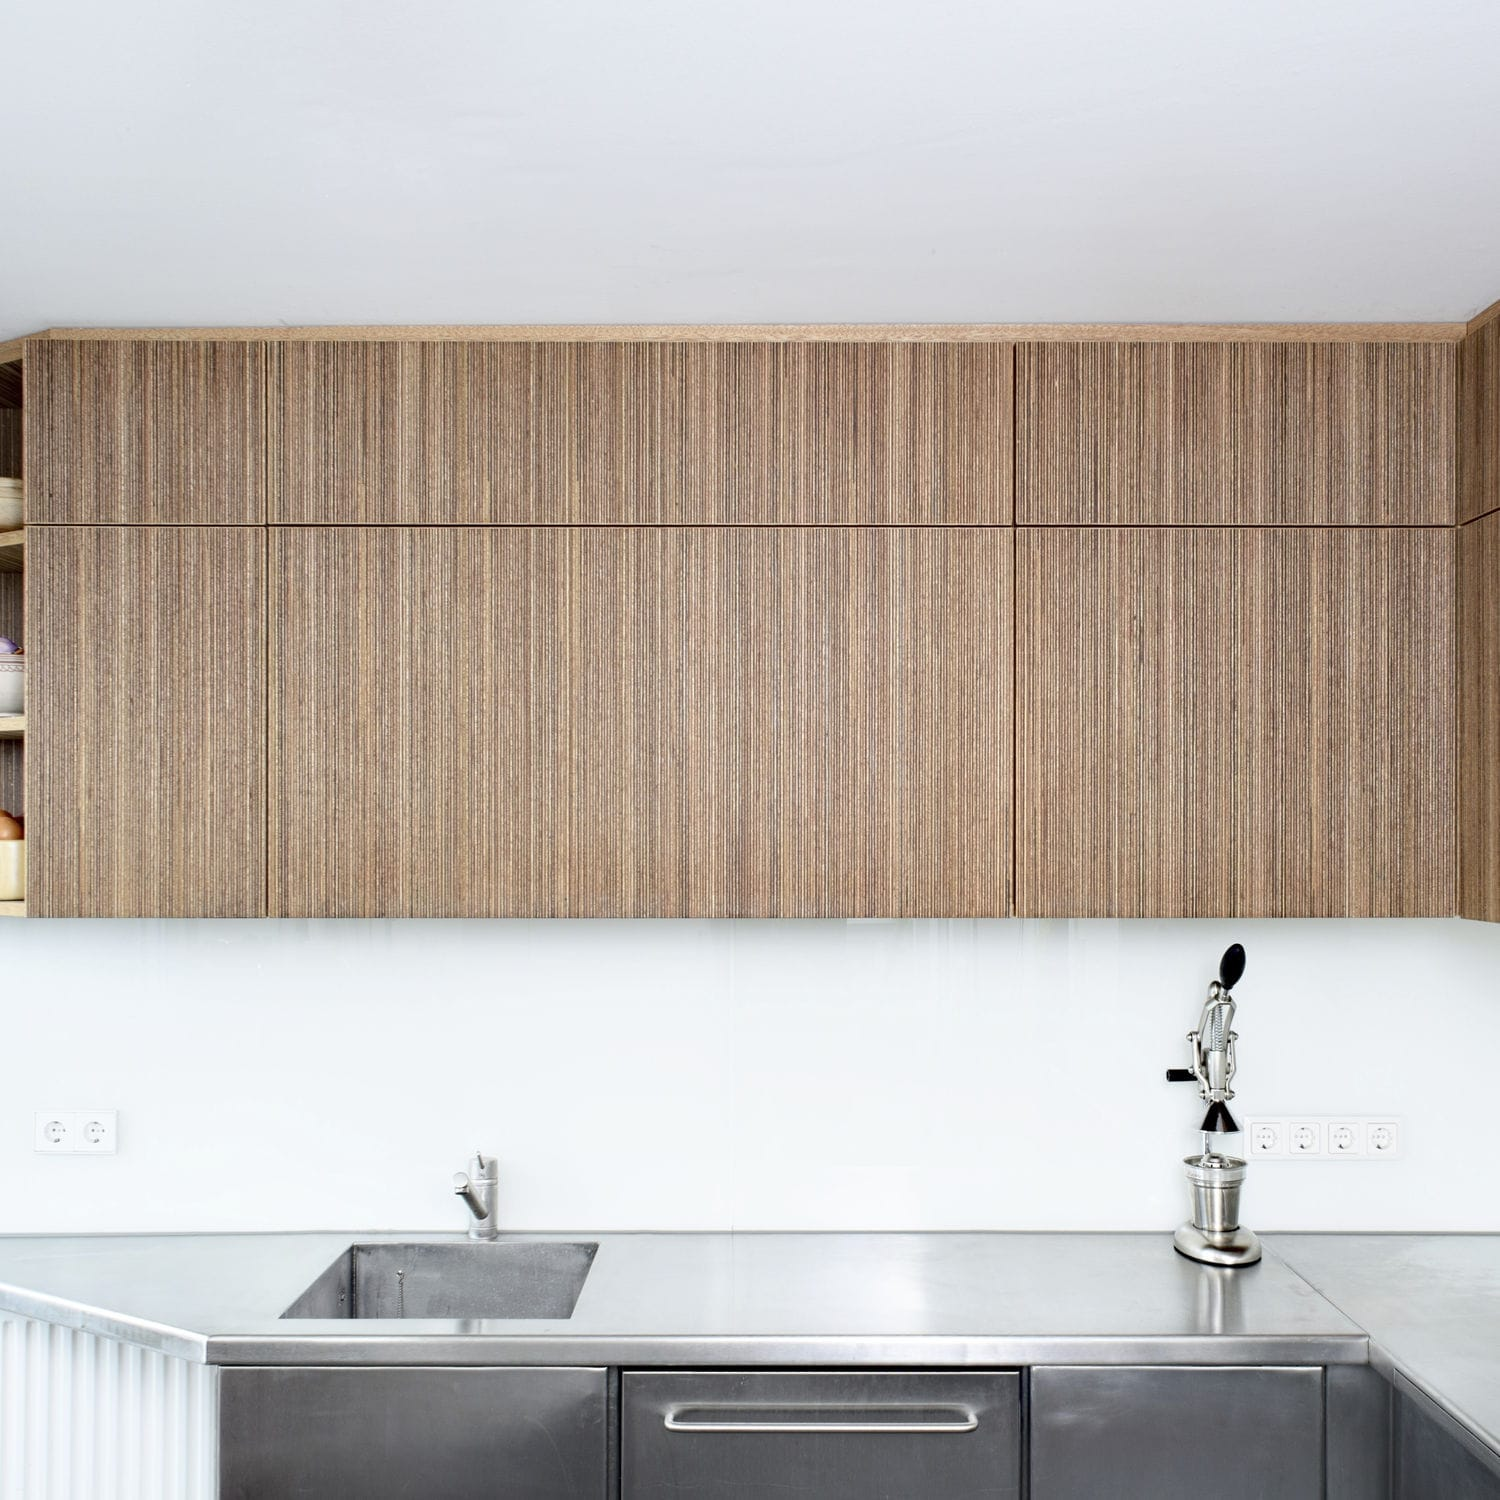 product kitchen wall cabinets Kitchen wall cabinet RESIDENTIAL KITCHENETTE by Catherine Jost Steinsel LU